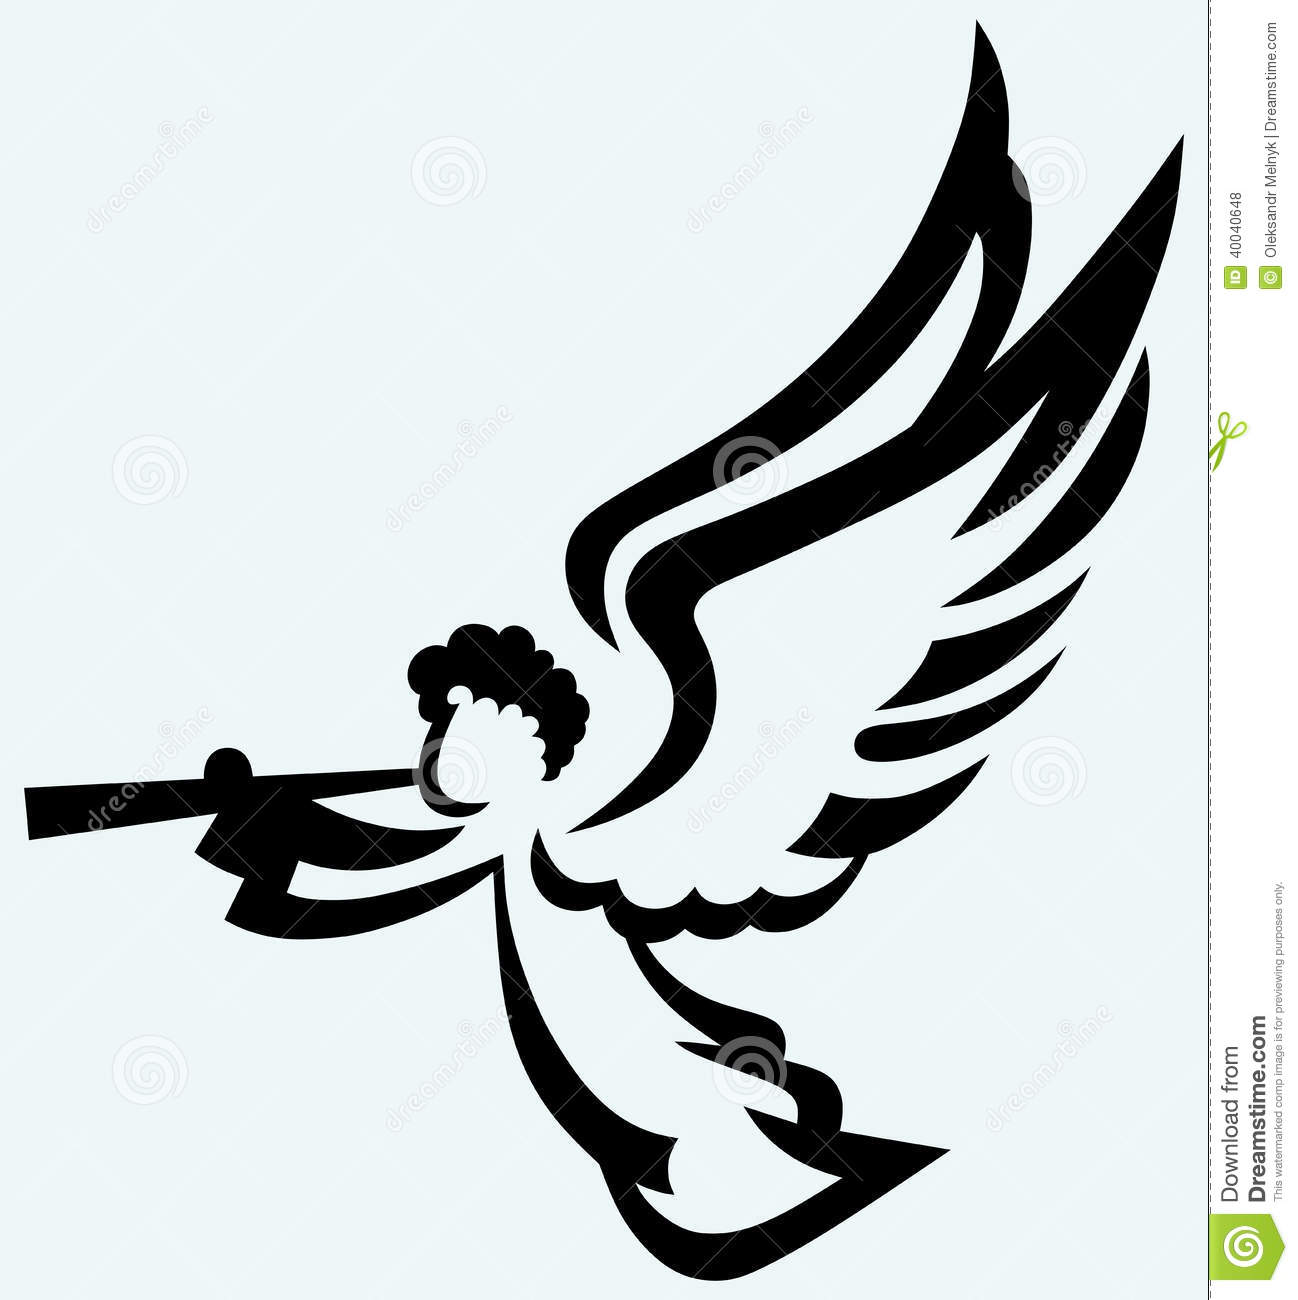 Angel With Trumpet Stock Vector - Image: 40040648